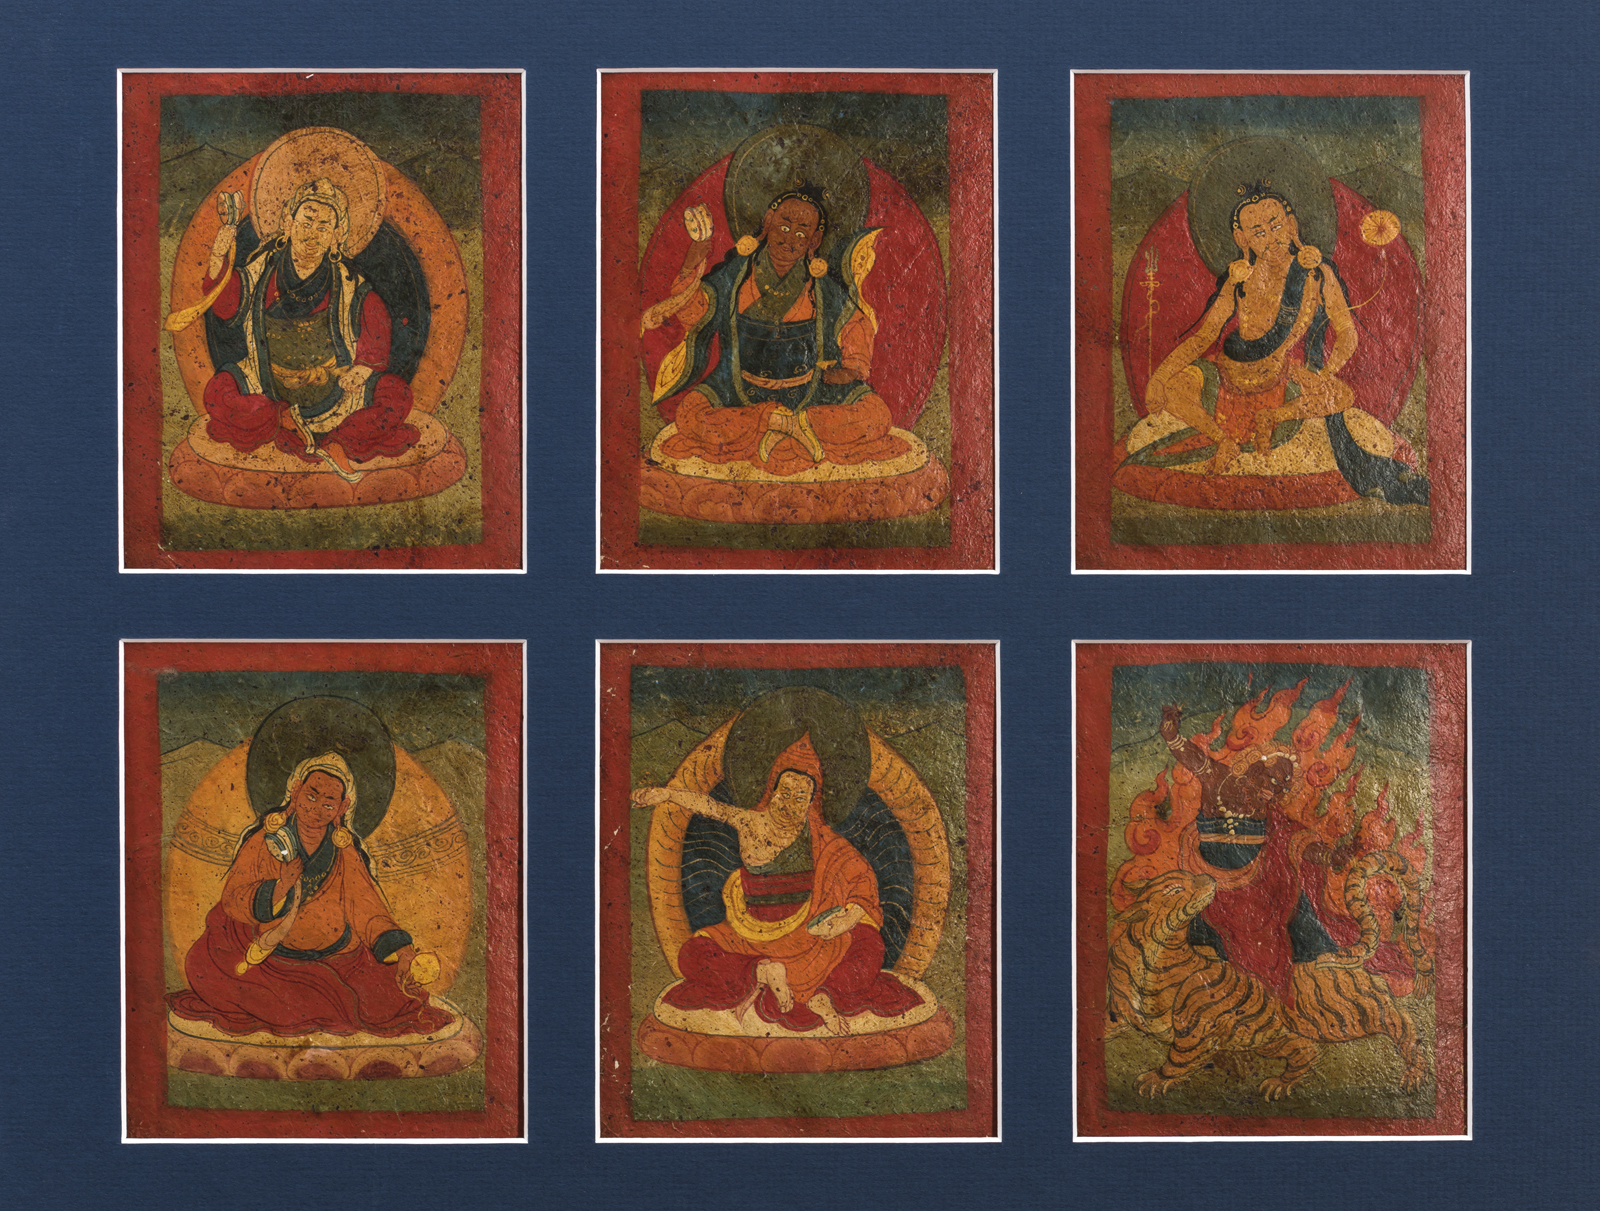 Six Superb Large Size Tibetan Buddhist Tsakli Paintings from the 18th Century